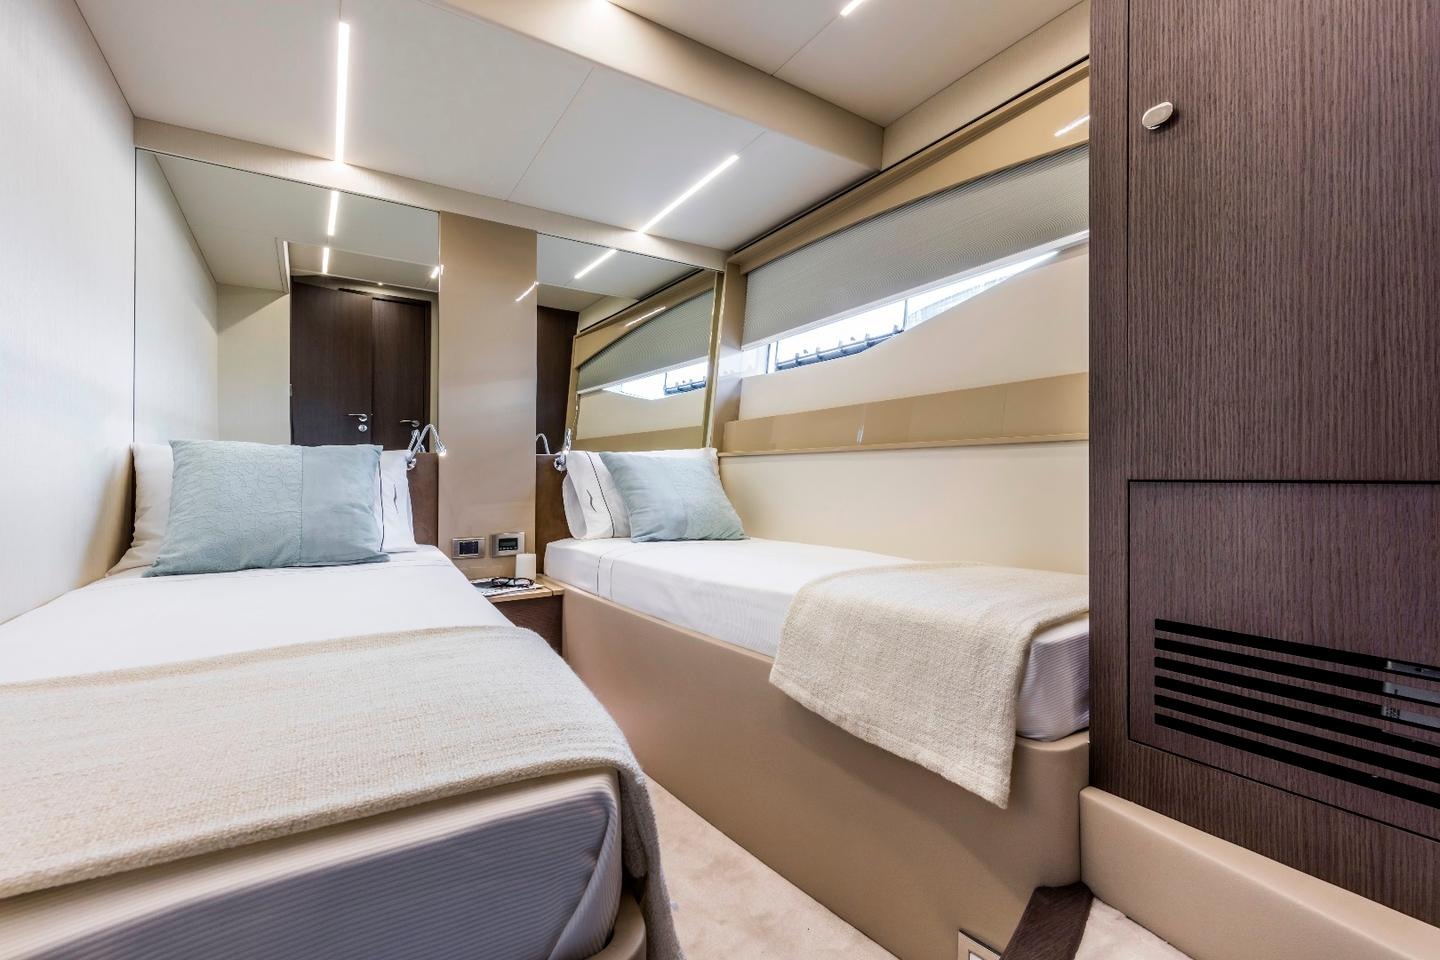 Each cabin on the62FLYhas its own bathroom